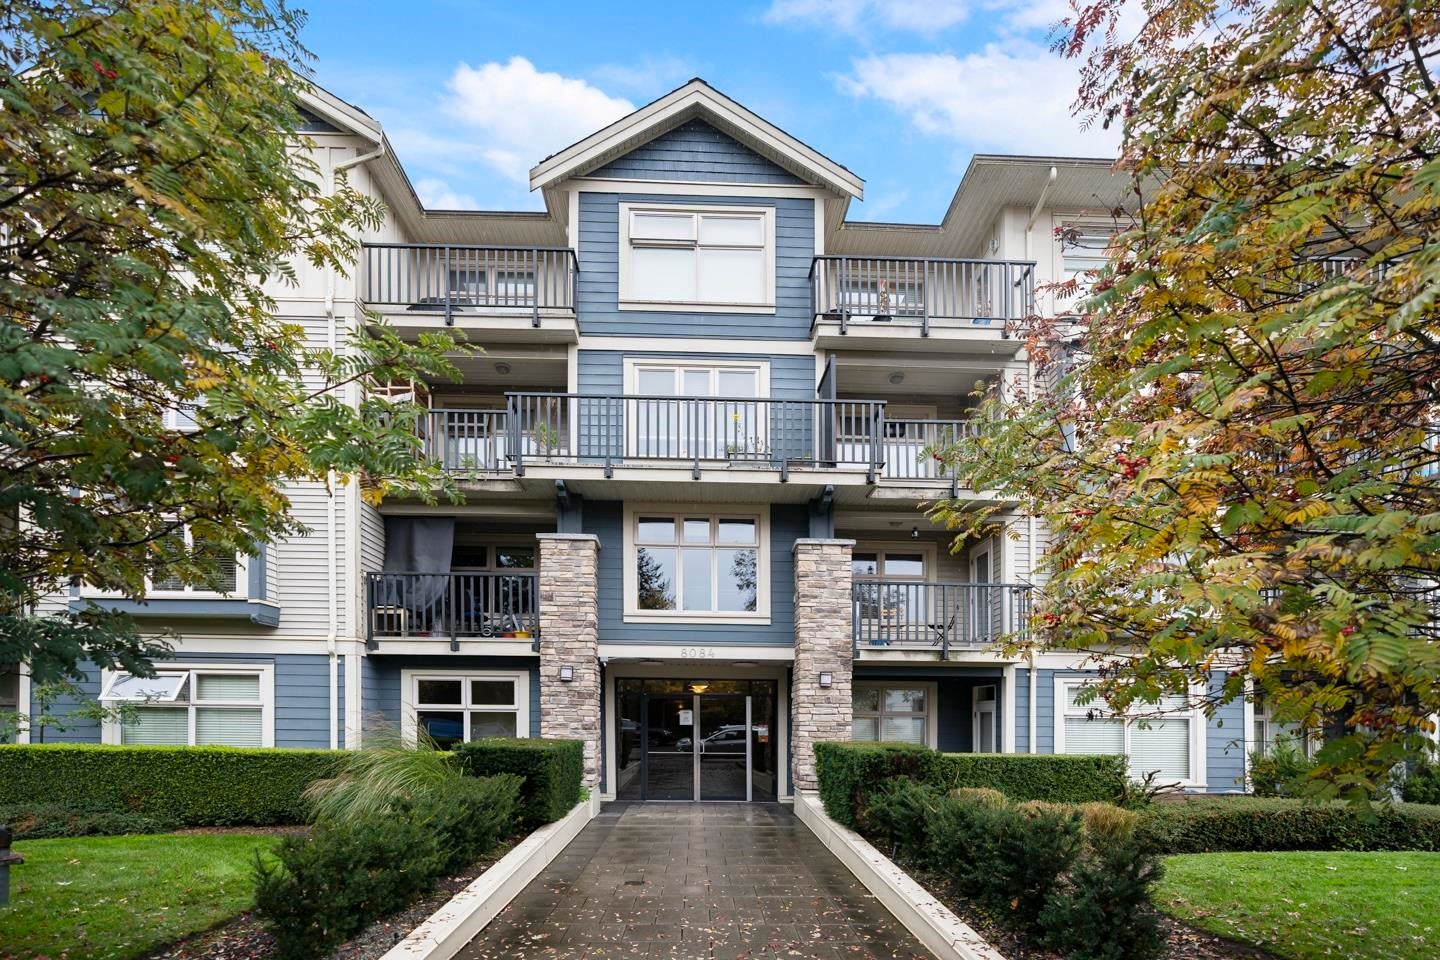 308 8084 120A STREET - Queen Mary Park Surrey Apartment/Condo for sale, 2 Bedrooms (R2627731) - #1